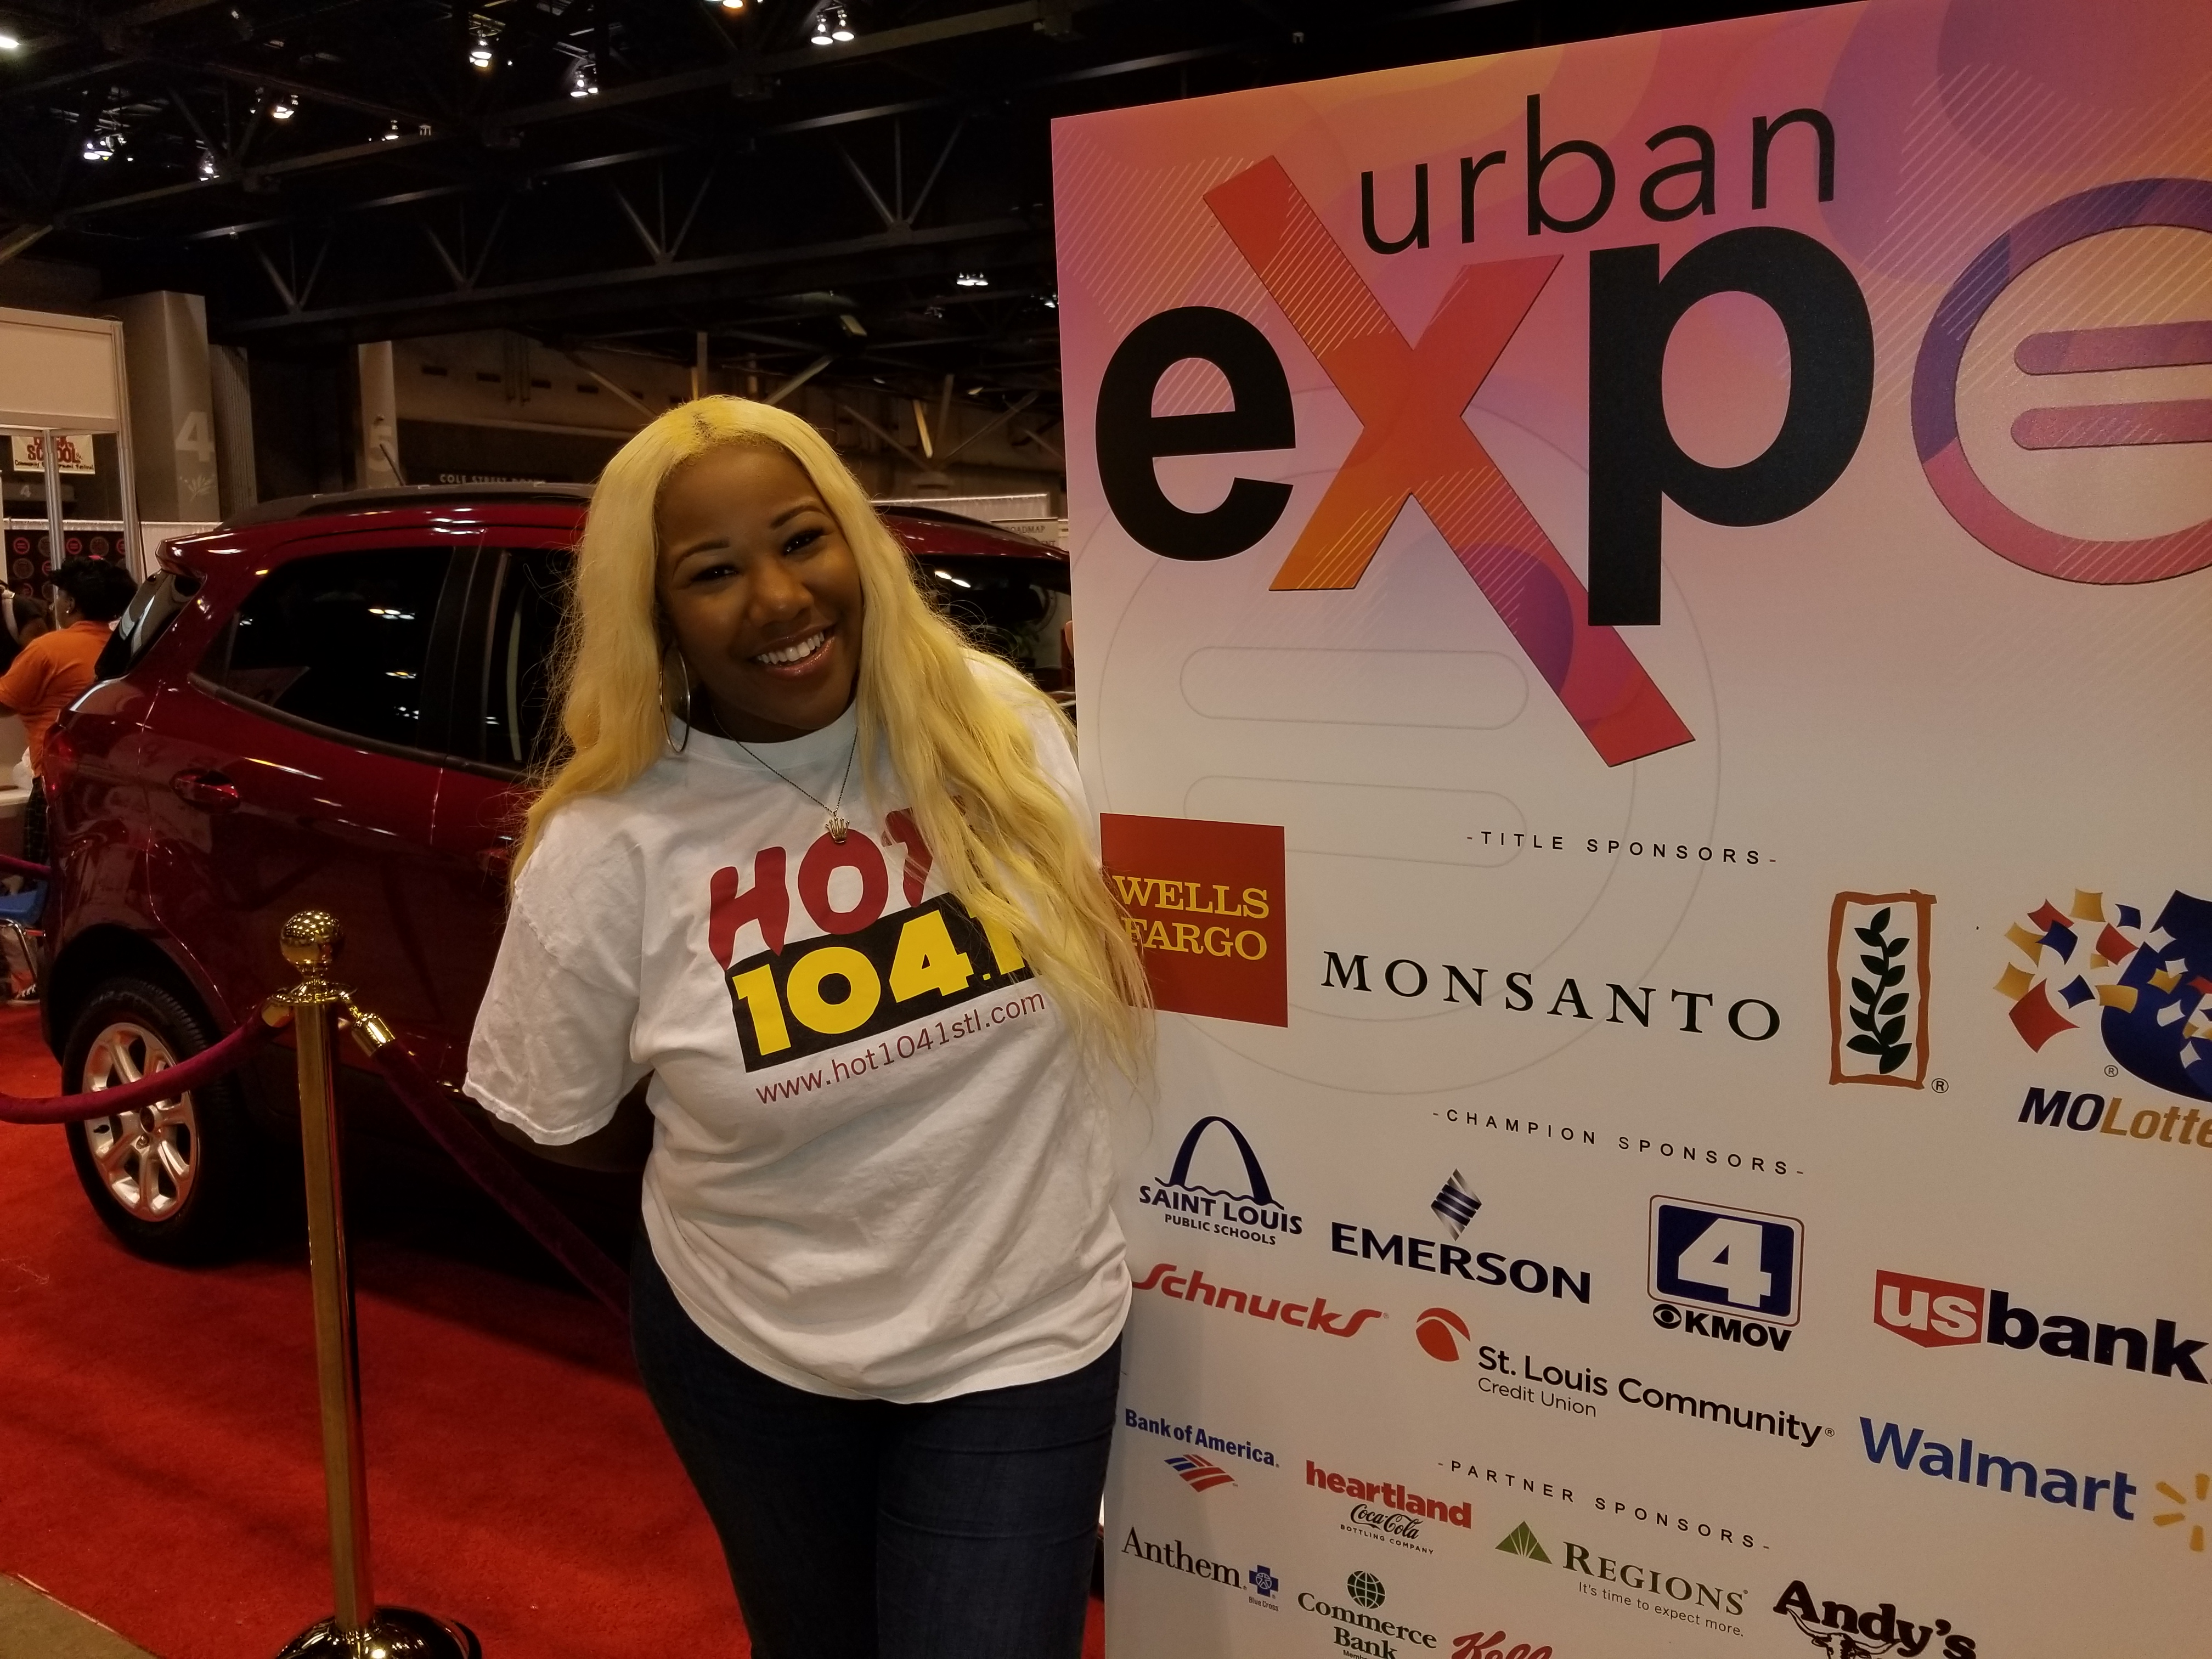 Hot 104.1 at Urban Expo 2018